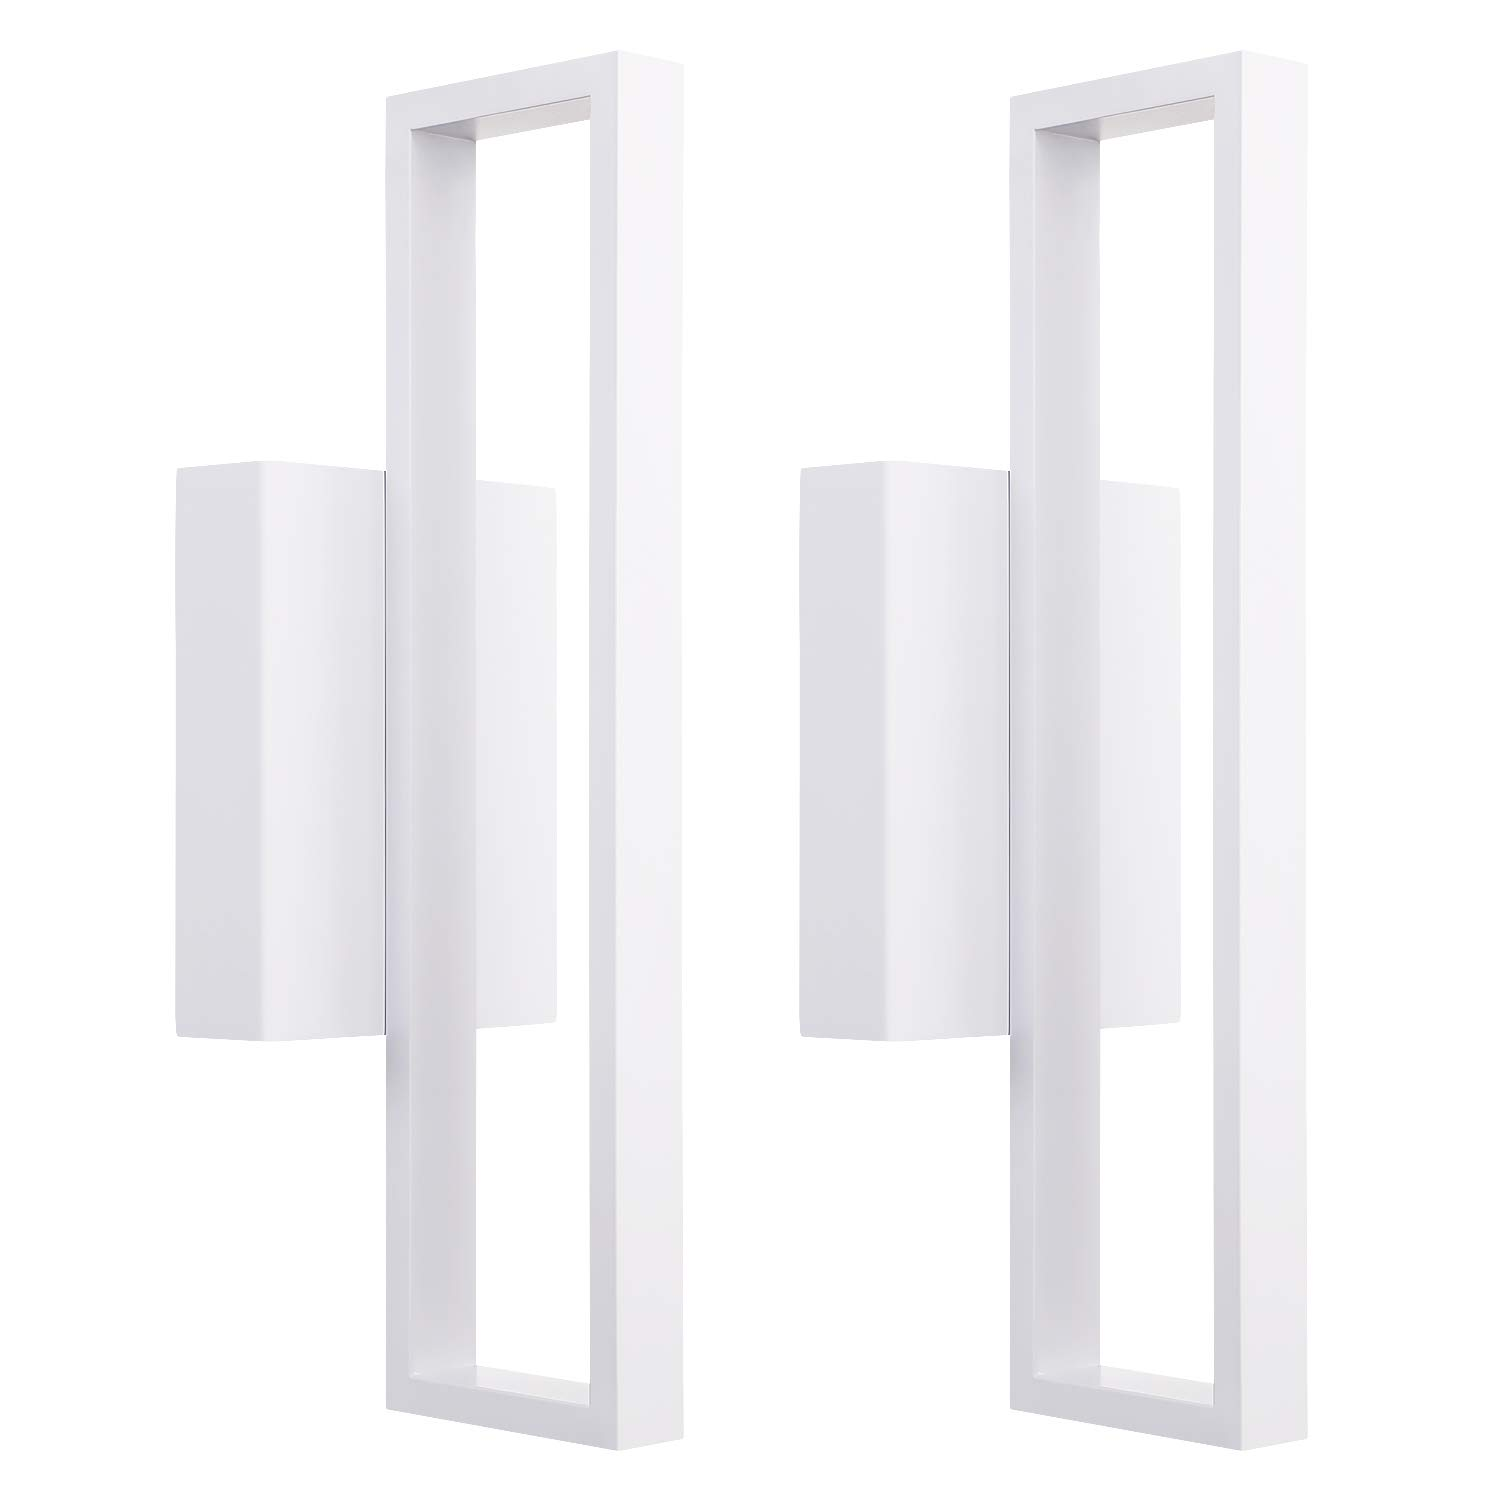 LEONLITE 12W LED Square Wall Sconce, LED Wall Lights, 50W Halogen Equivalent, 600lm Surface Mounted LED Wall Lamp, Room Decor for Office, Living Room, Bedroom, Hallway, Corridor, Pack of 2